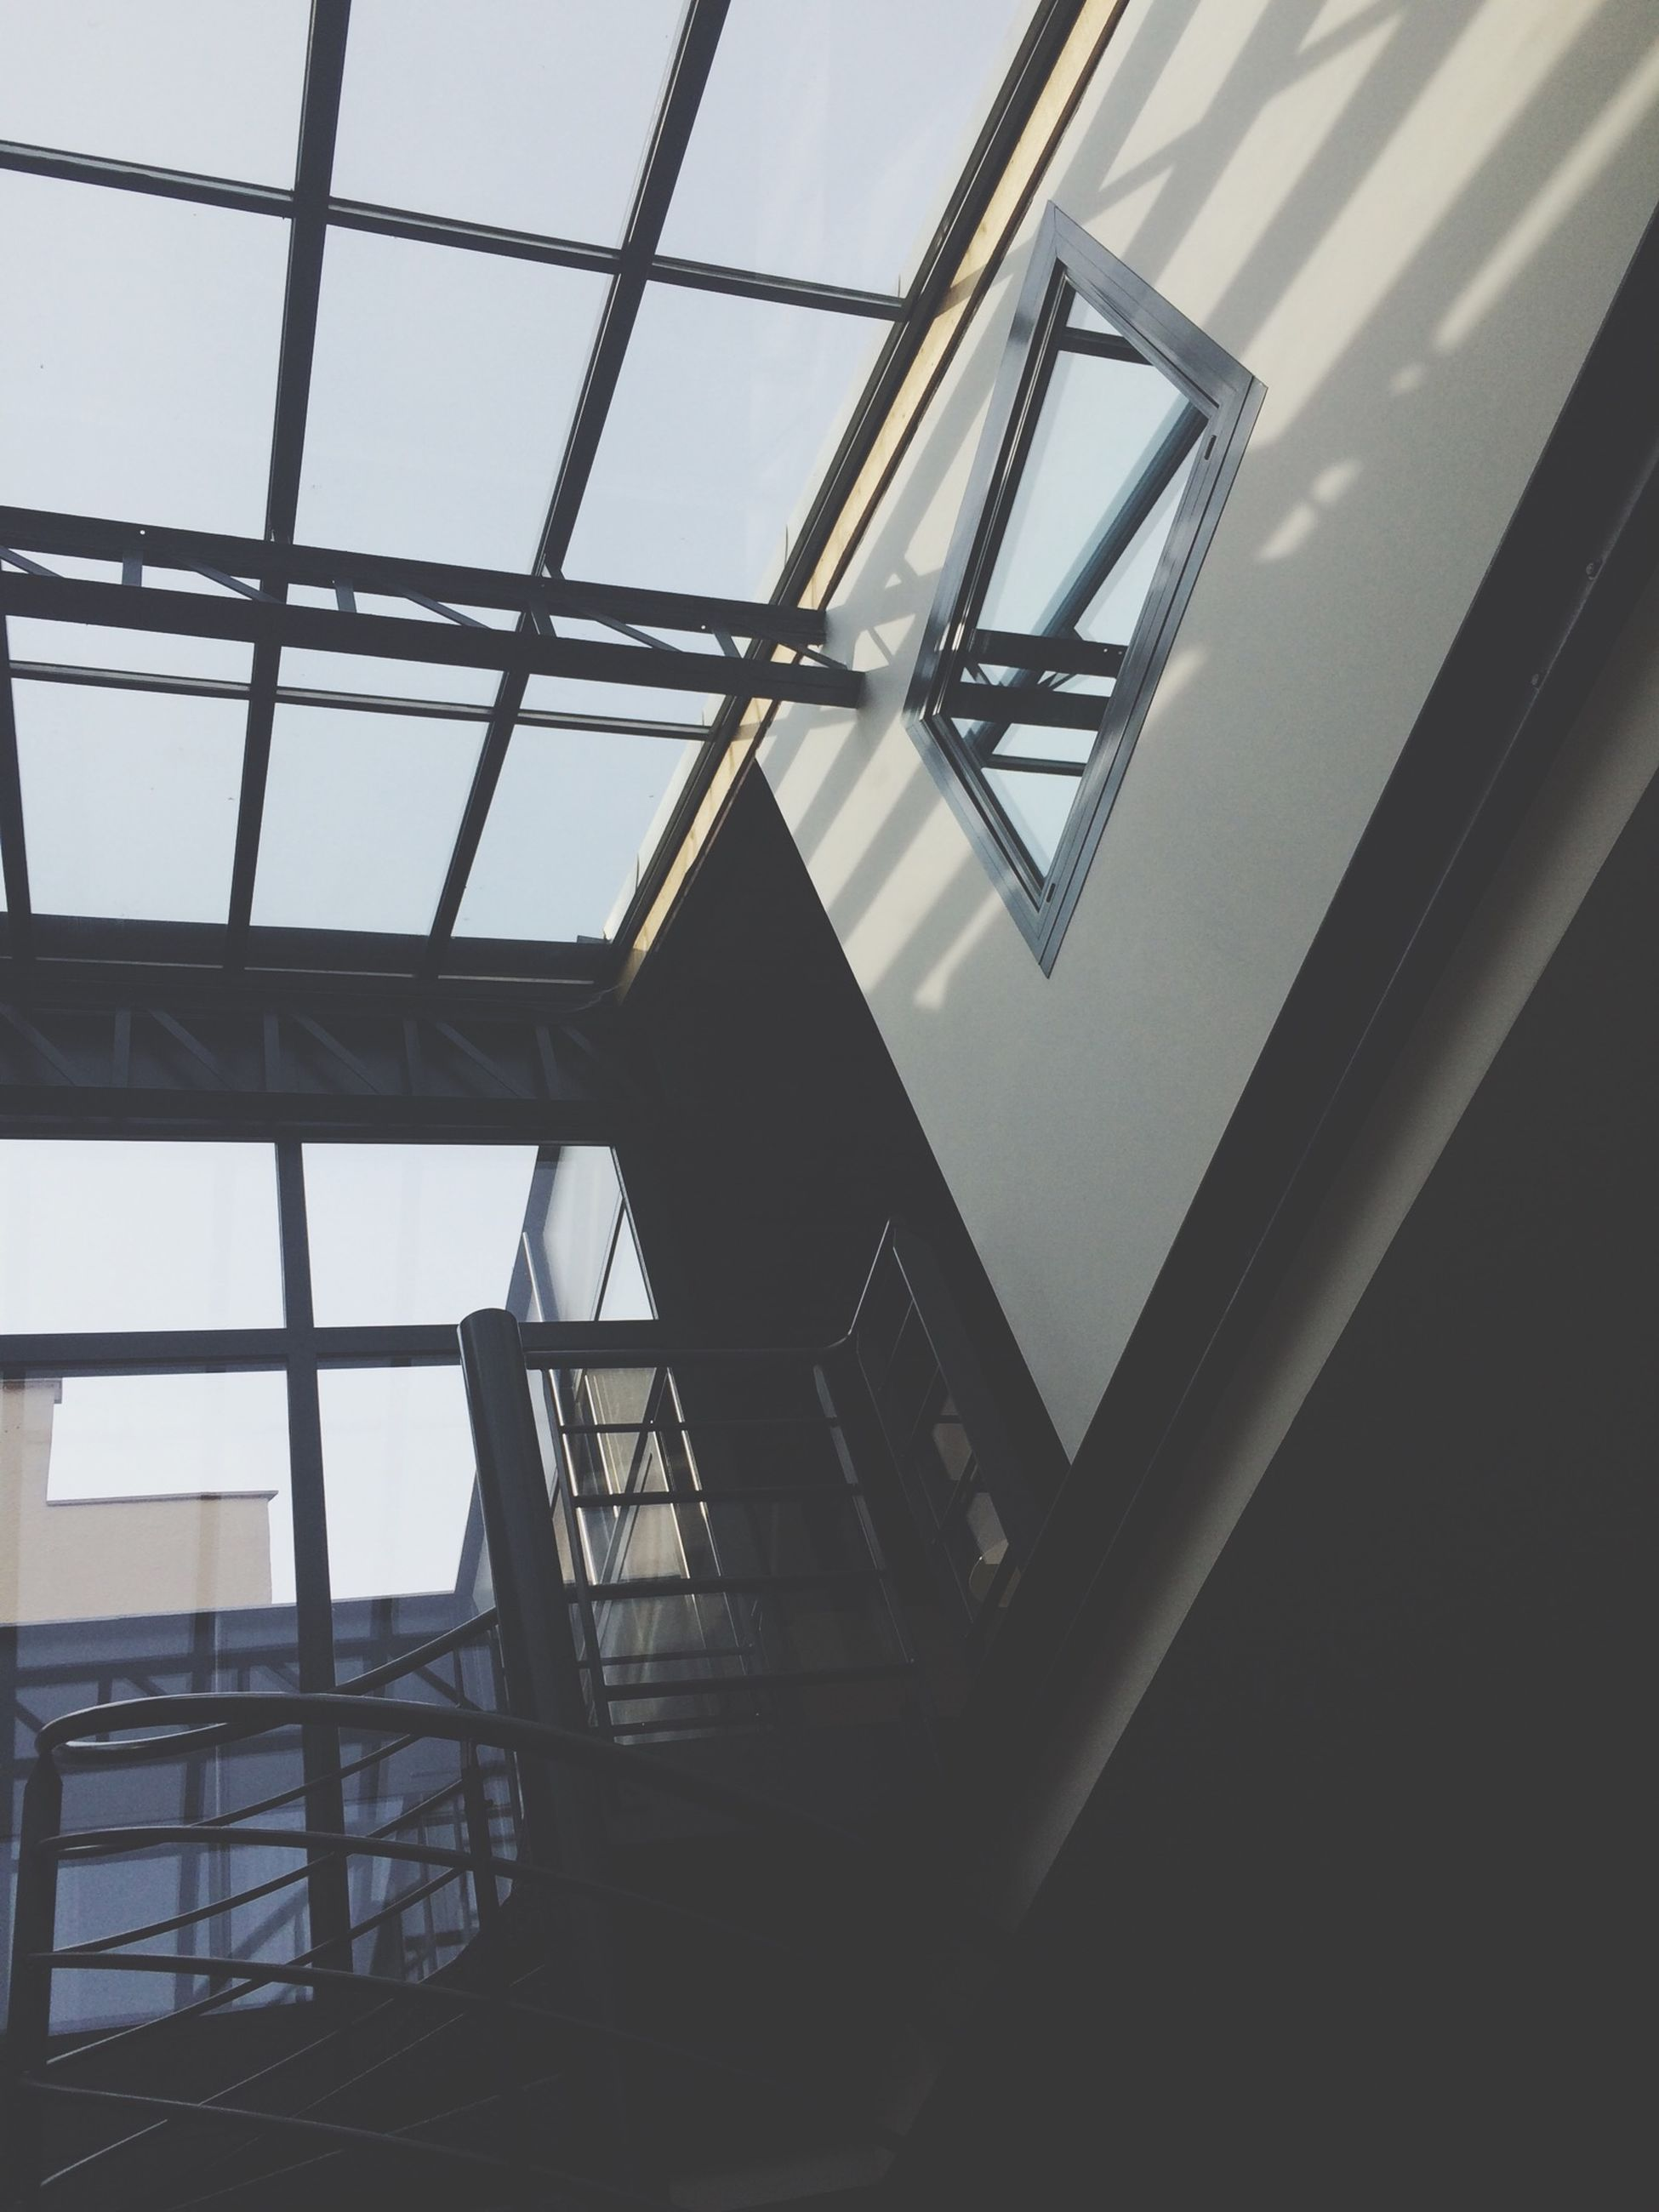 architecture, built structure, low angle view, building exterior, indoors, window, building, metal, glass - material, sky, railing, directly below, pattern, day, architectural feature, no people, modern, geometric shape, clear sky, ceiling